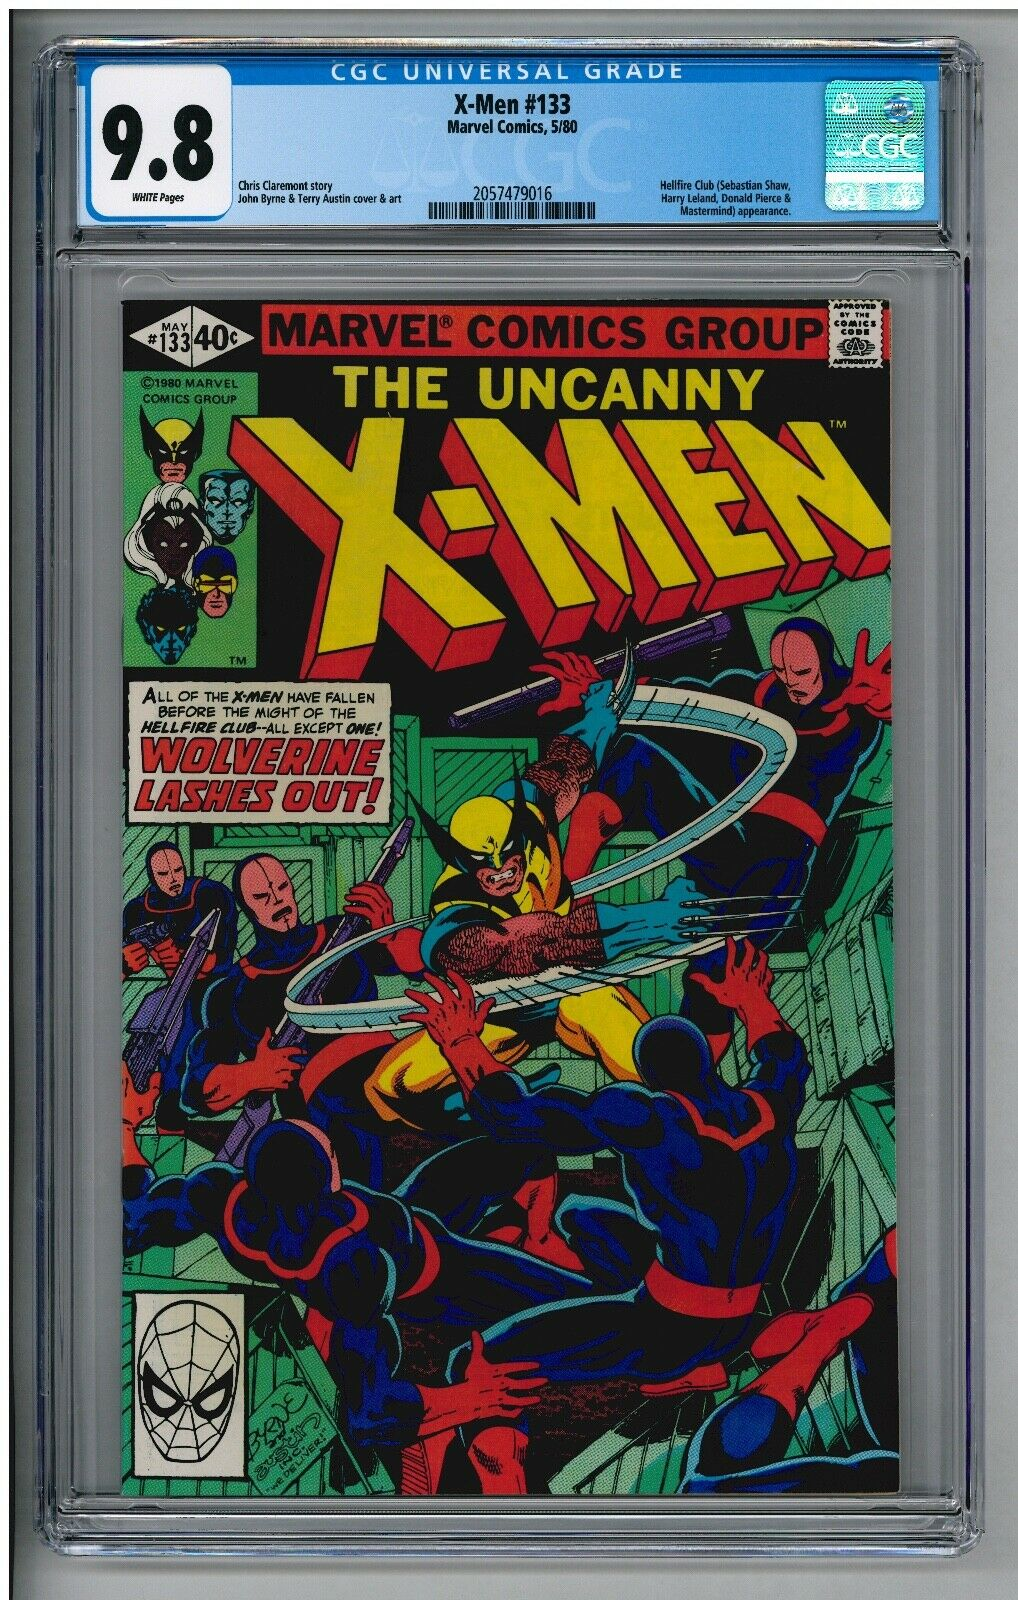 UNCANNY X-MEN 133 CGC 9.8 NM/MT WHITE PAGES 1st Solo WOLVERINE Cover 5/80 BYRNE